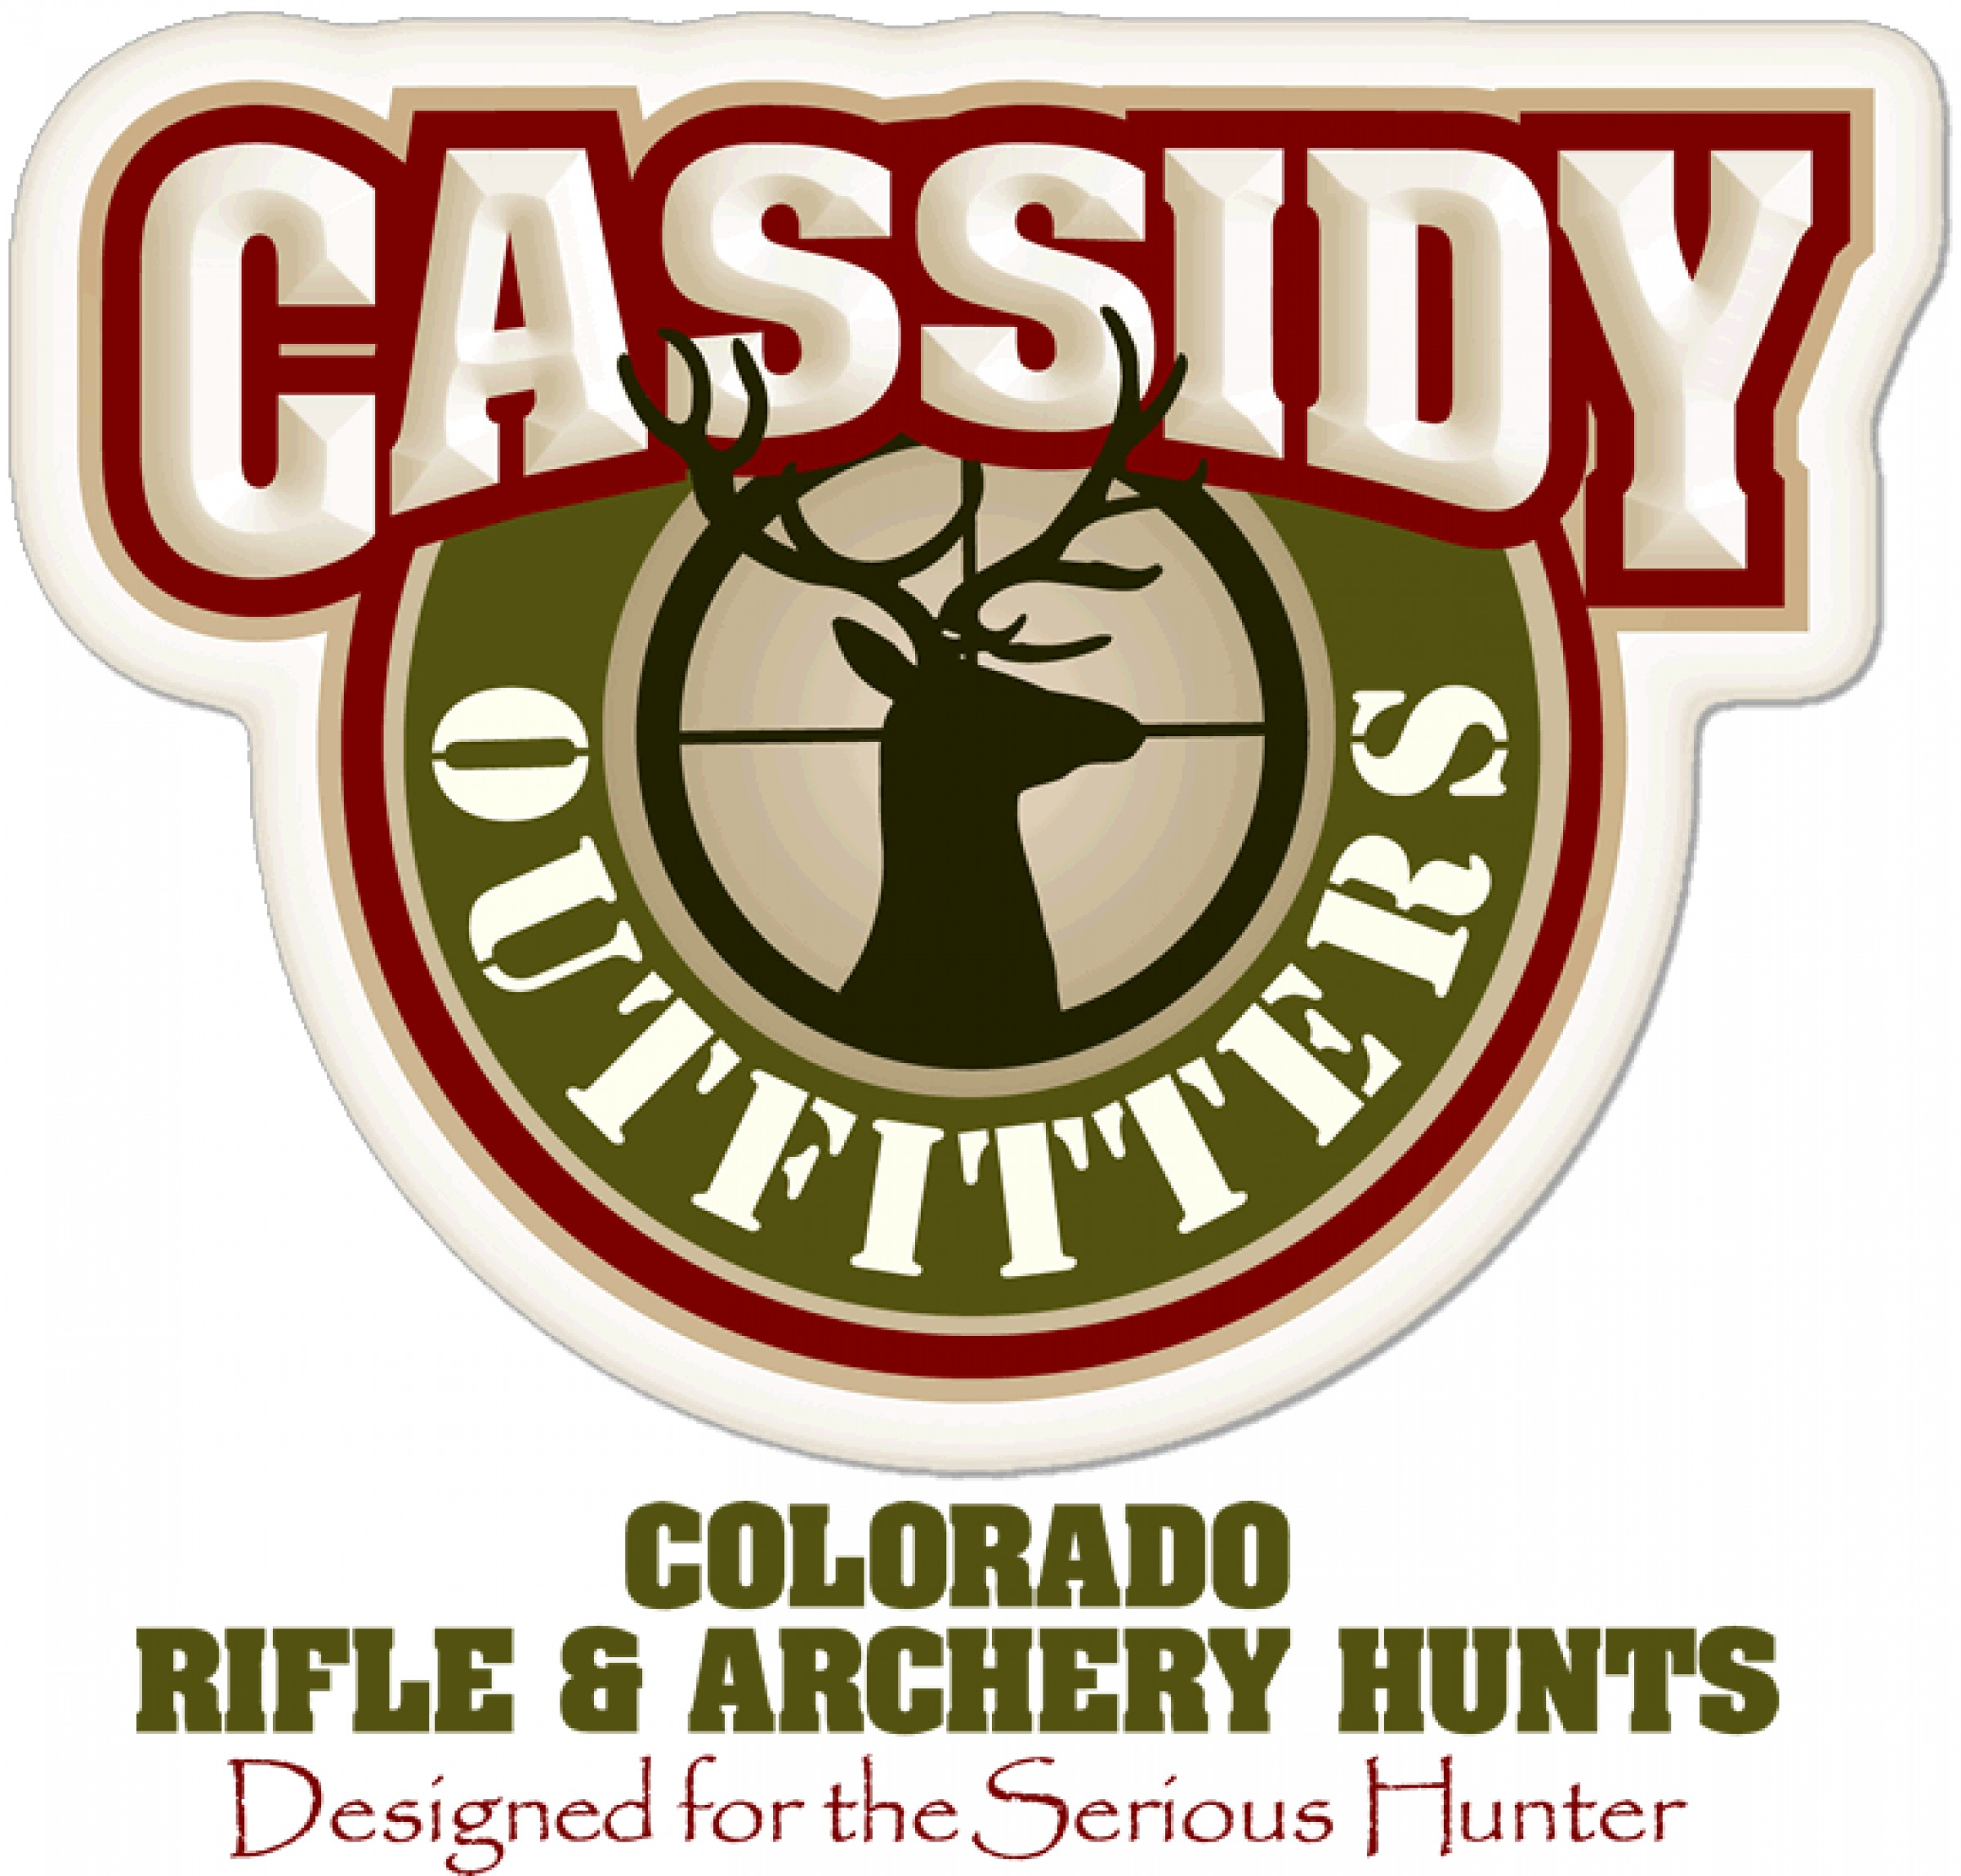 Jack Cassidy Colorado Big Game Hunts LLC